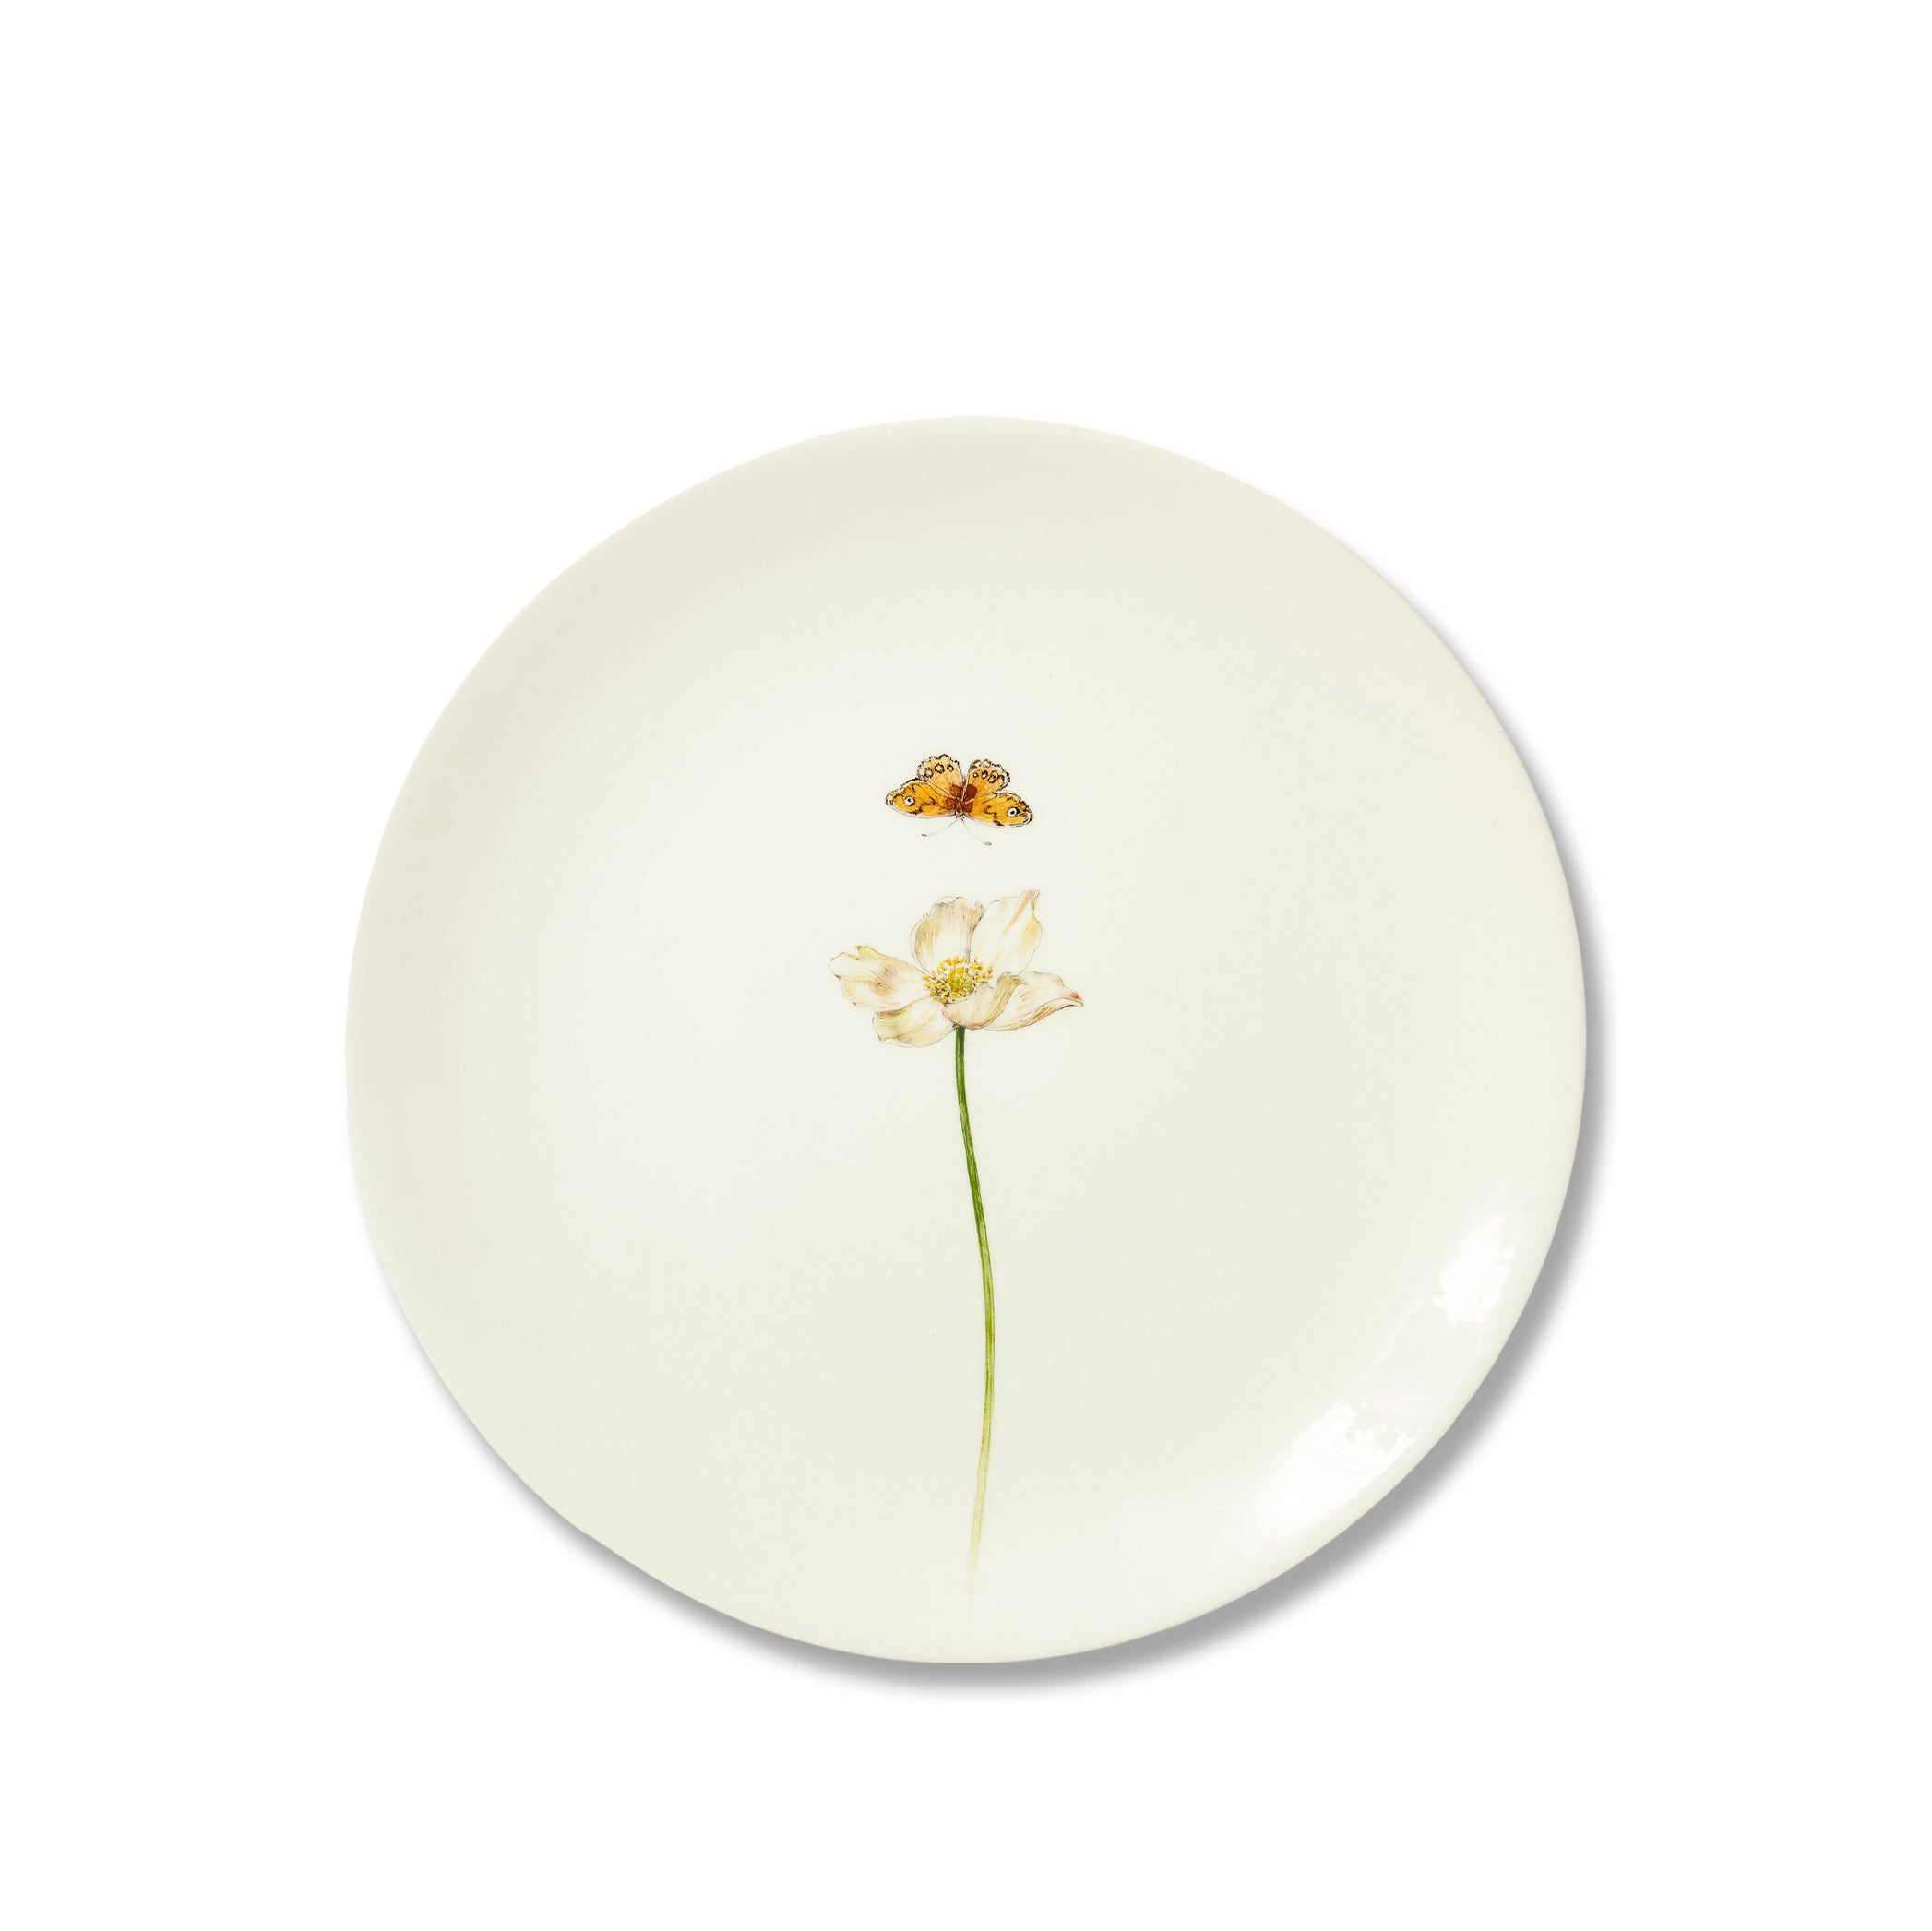 Bloom Anemone Hupehensis Dinner Plate, 25cm